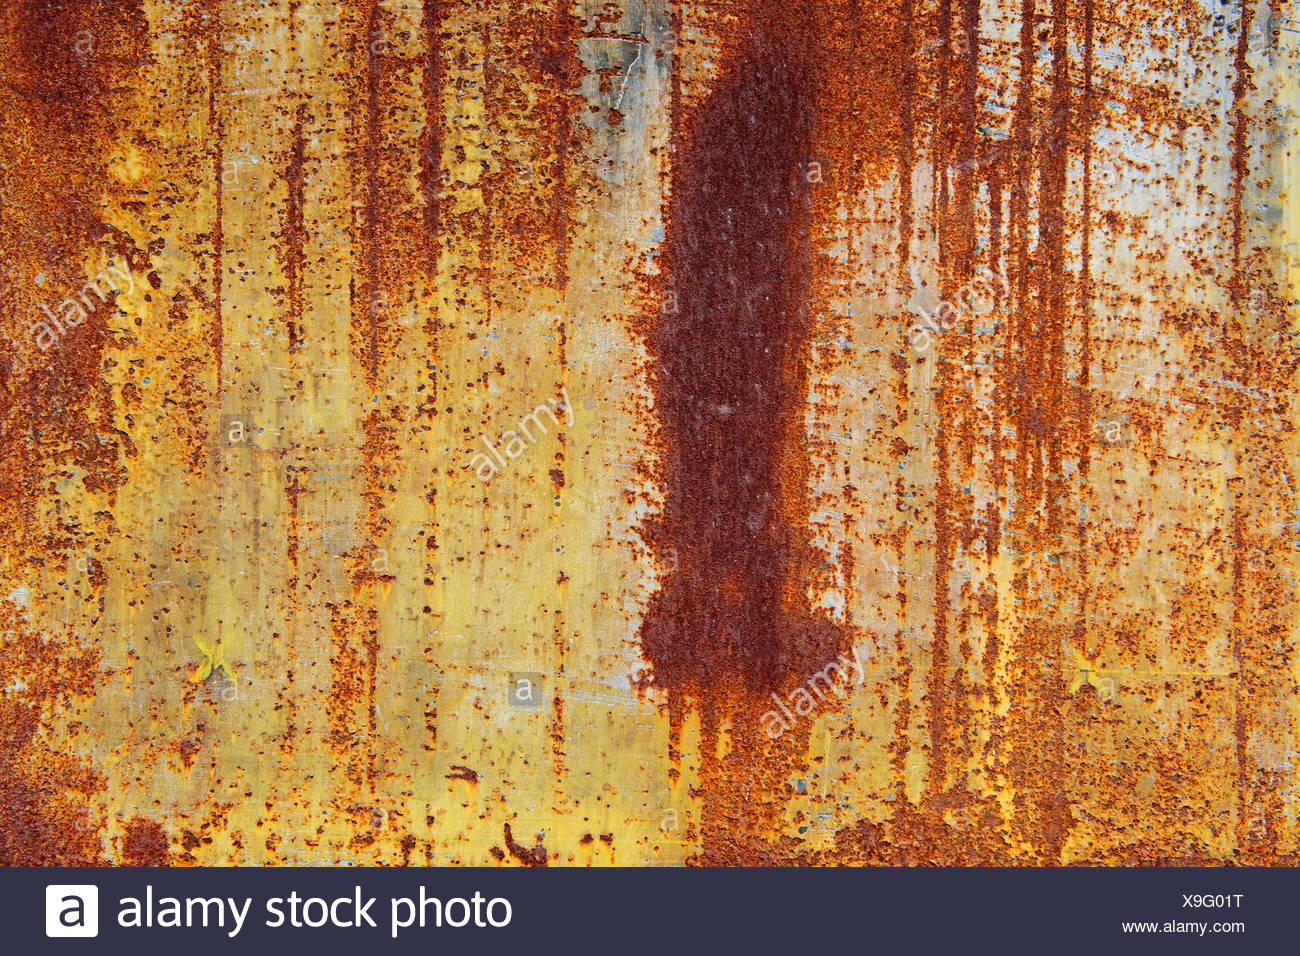 A wooden surface - Stock Image